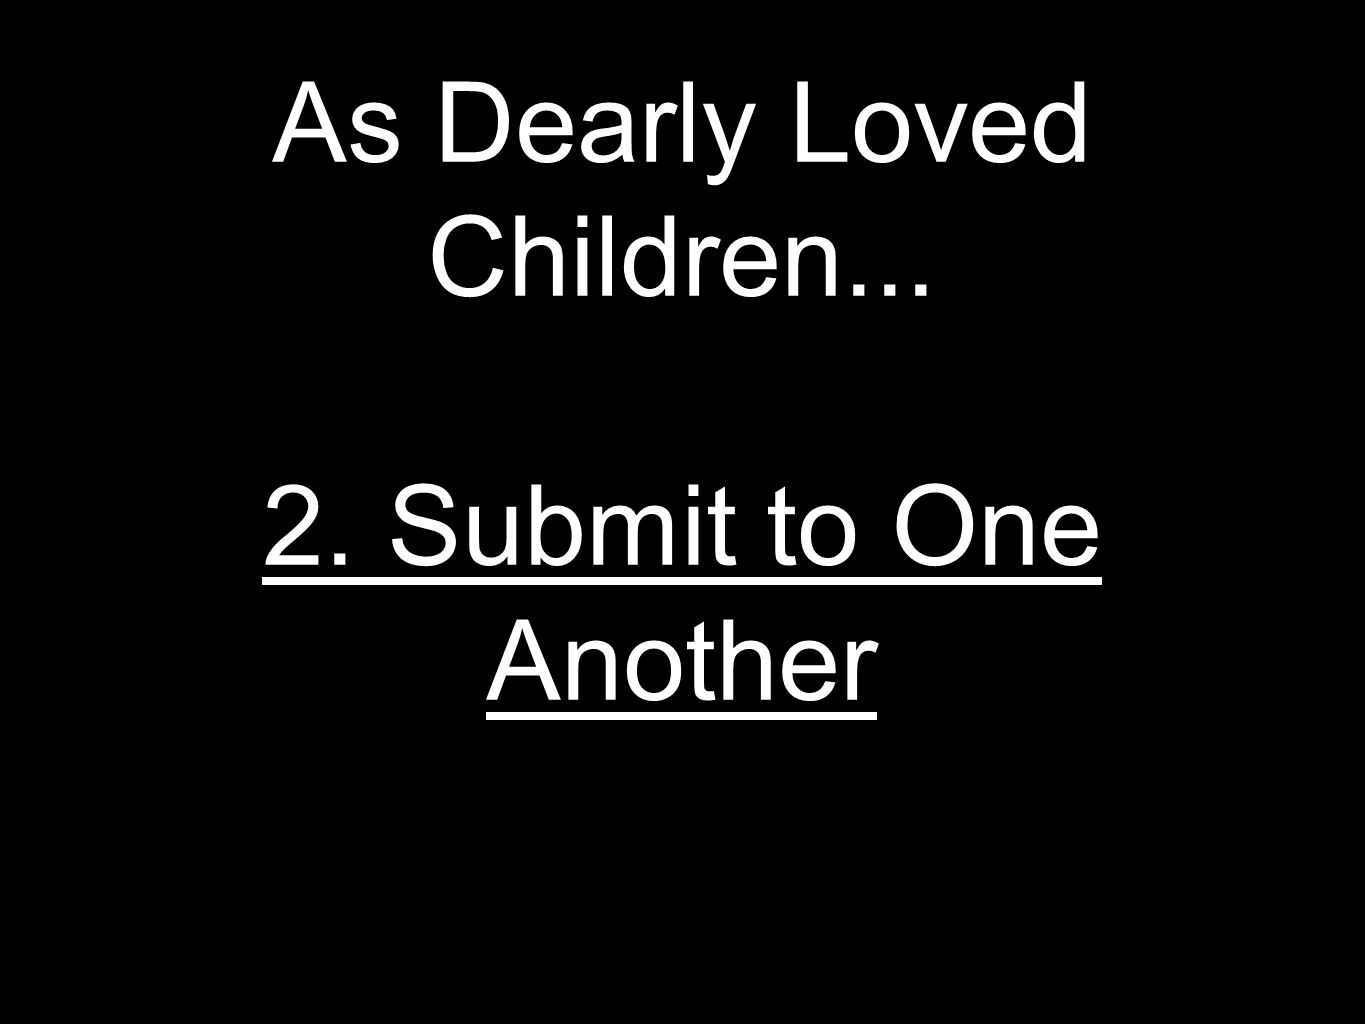 As Dearly Loved Children... 2. Submit to One Another